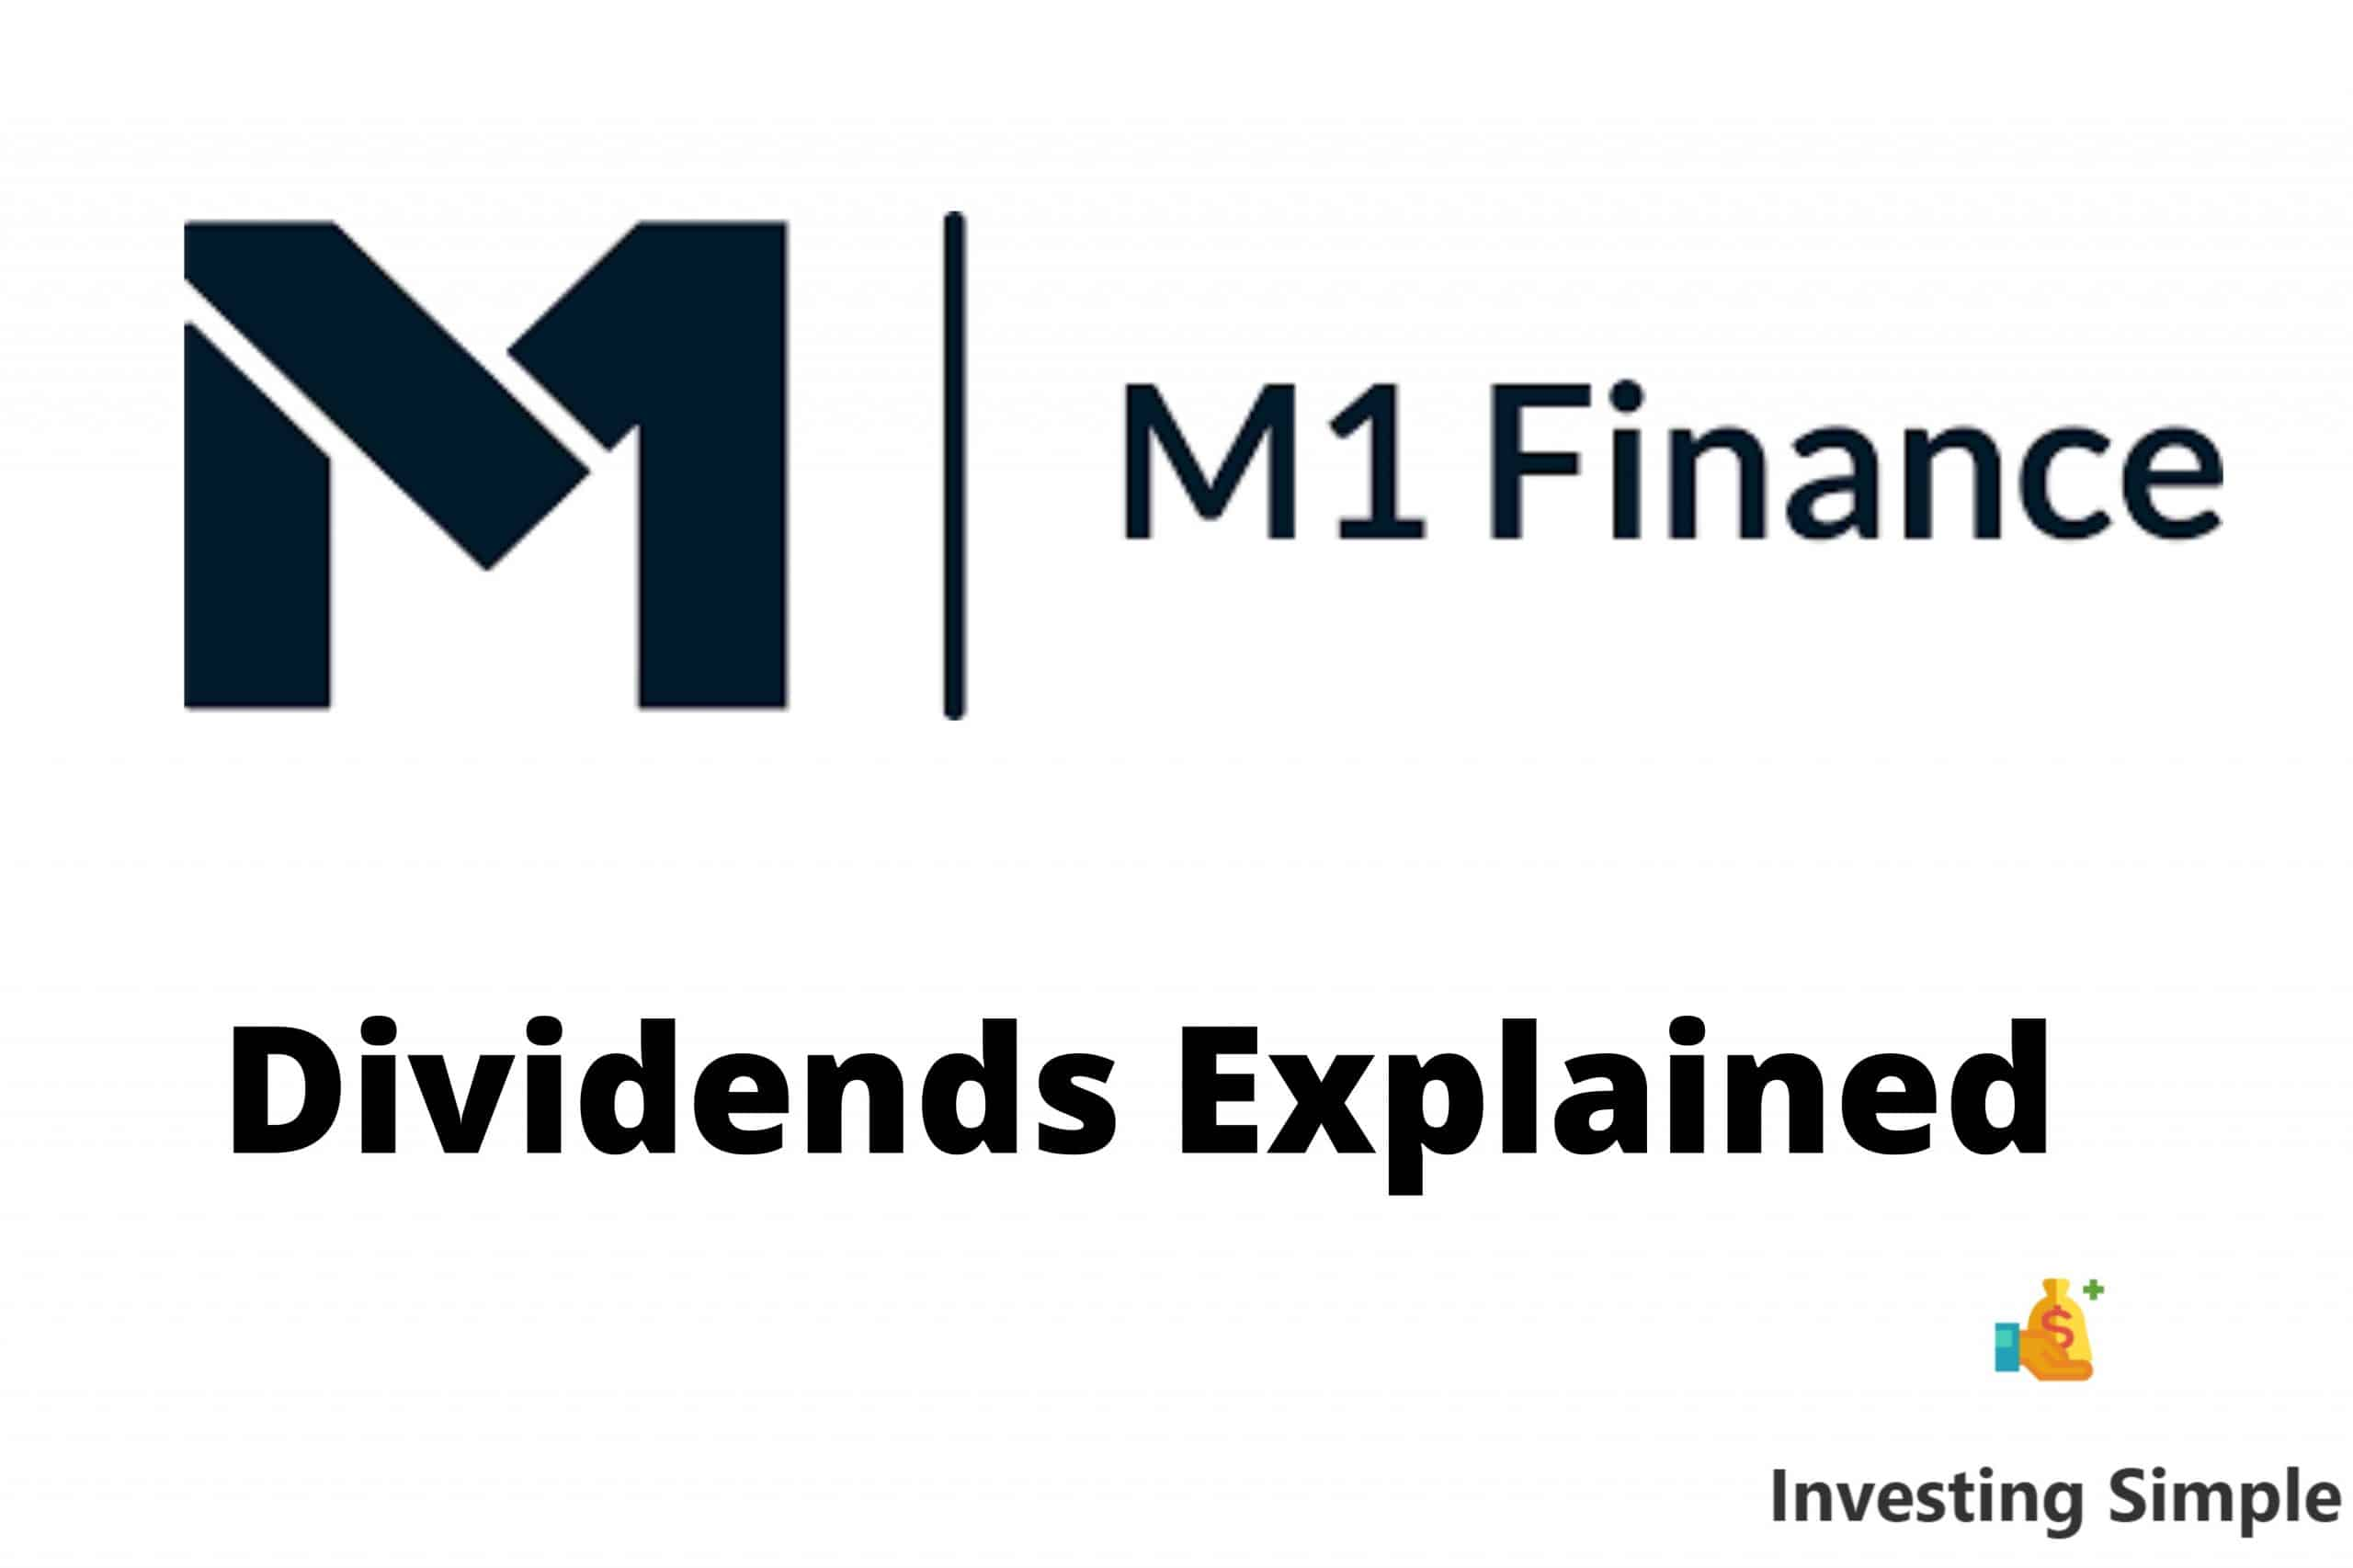 M1 Finance Dividends Explained